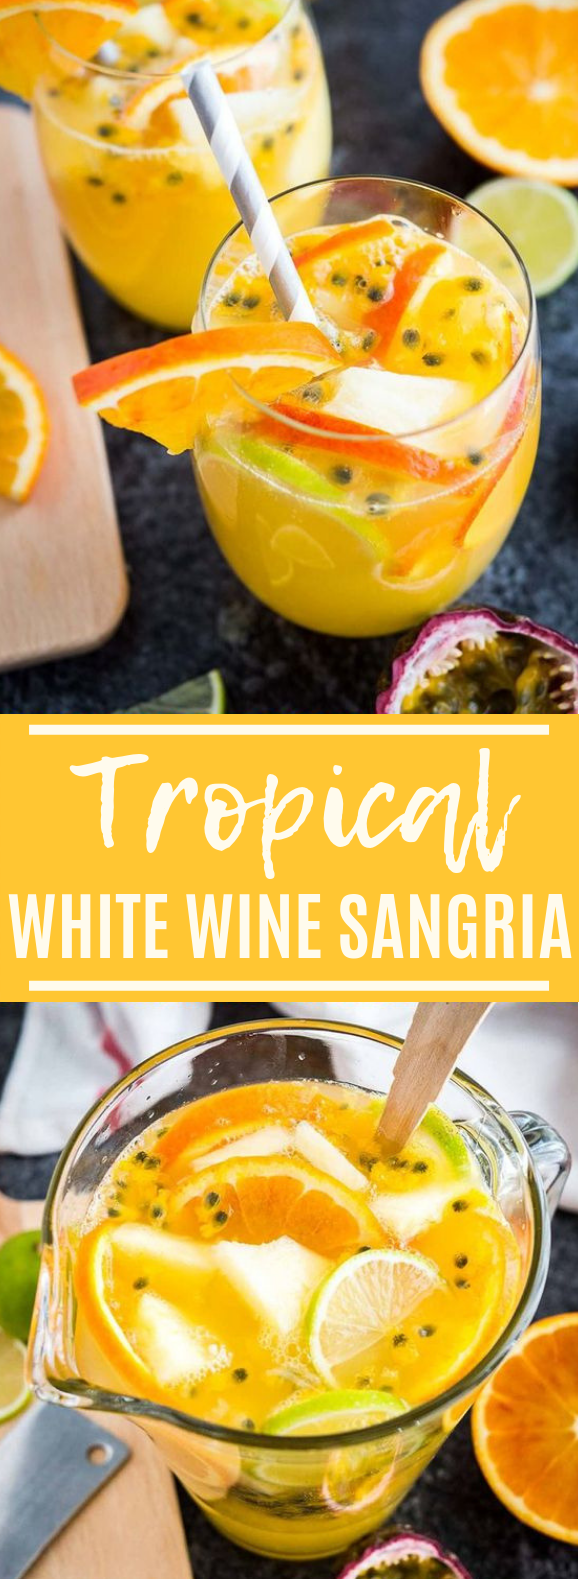 Tropical White Wine Sangria #drink #summer